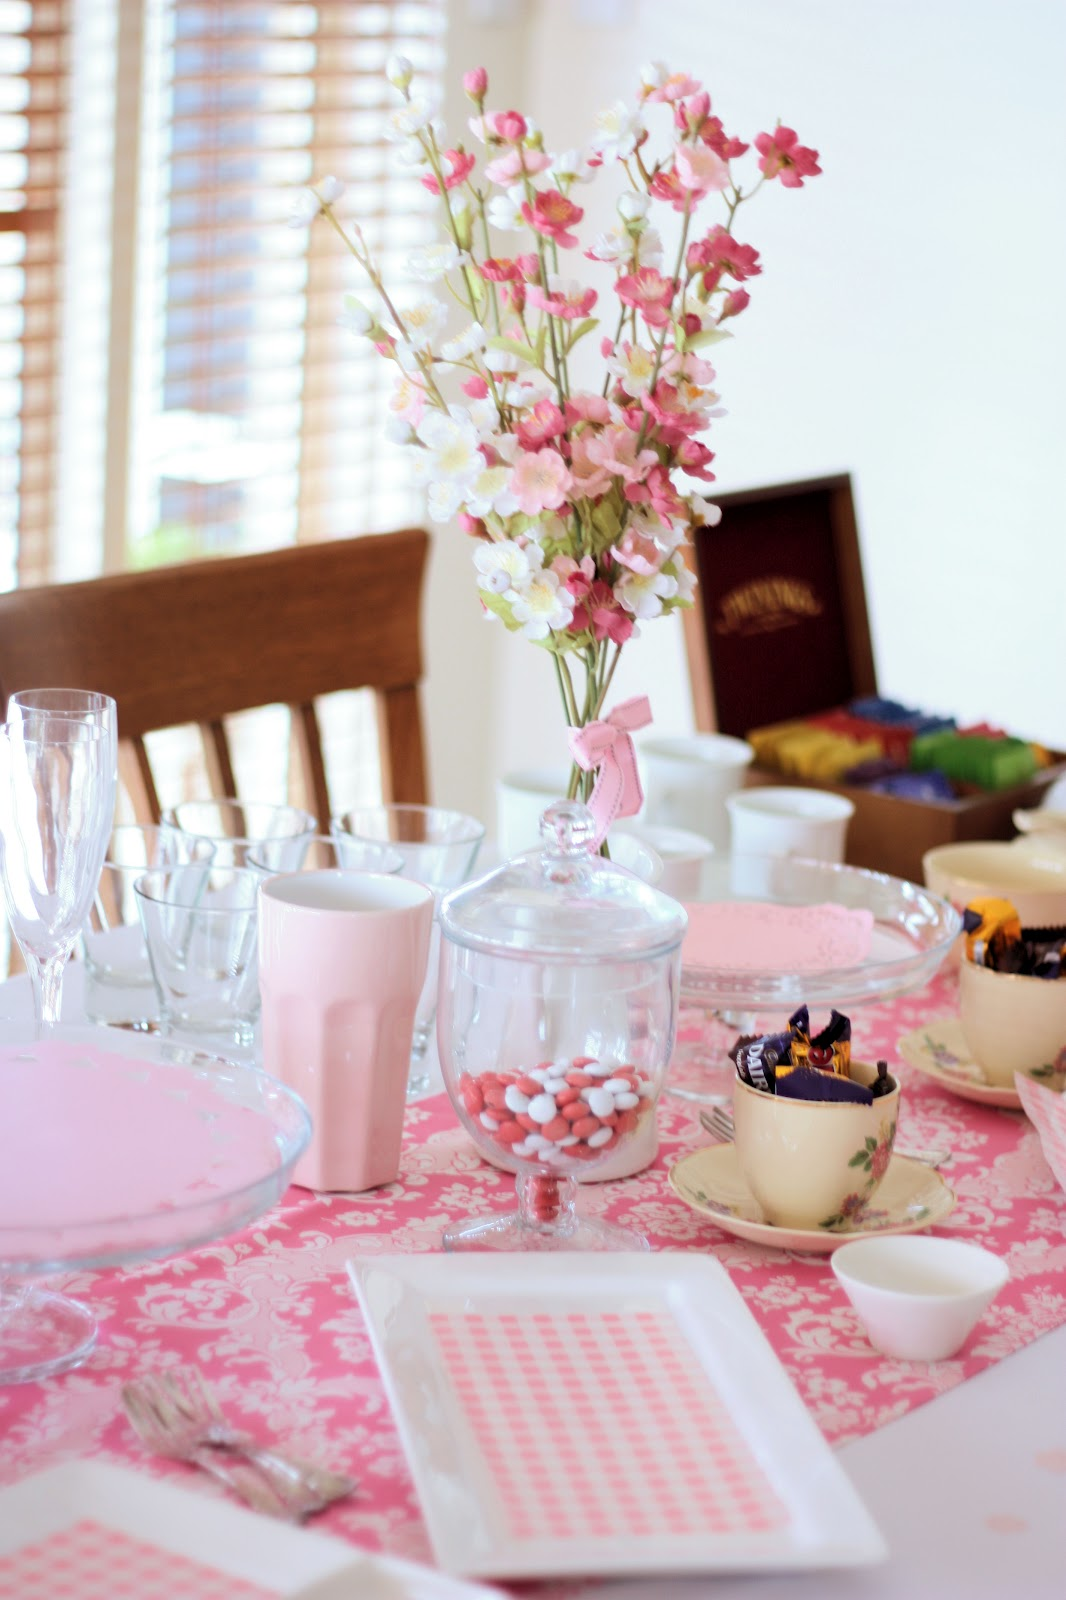 A Mothers Day Celebration - A Spoonful of Sugar